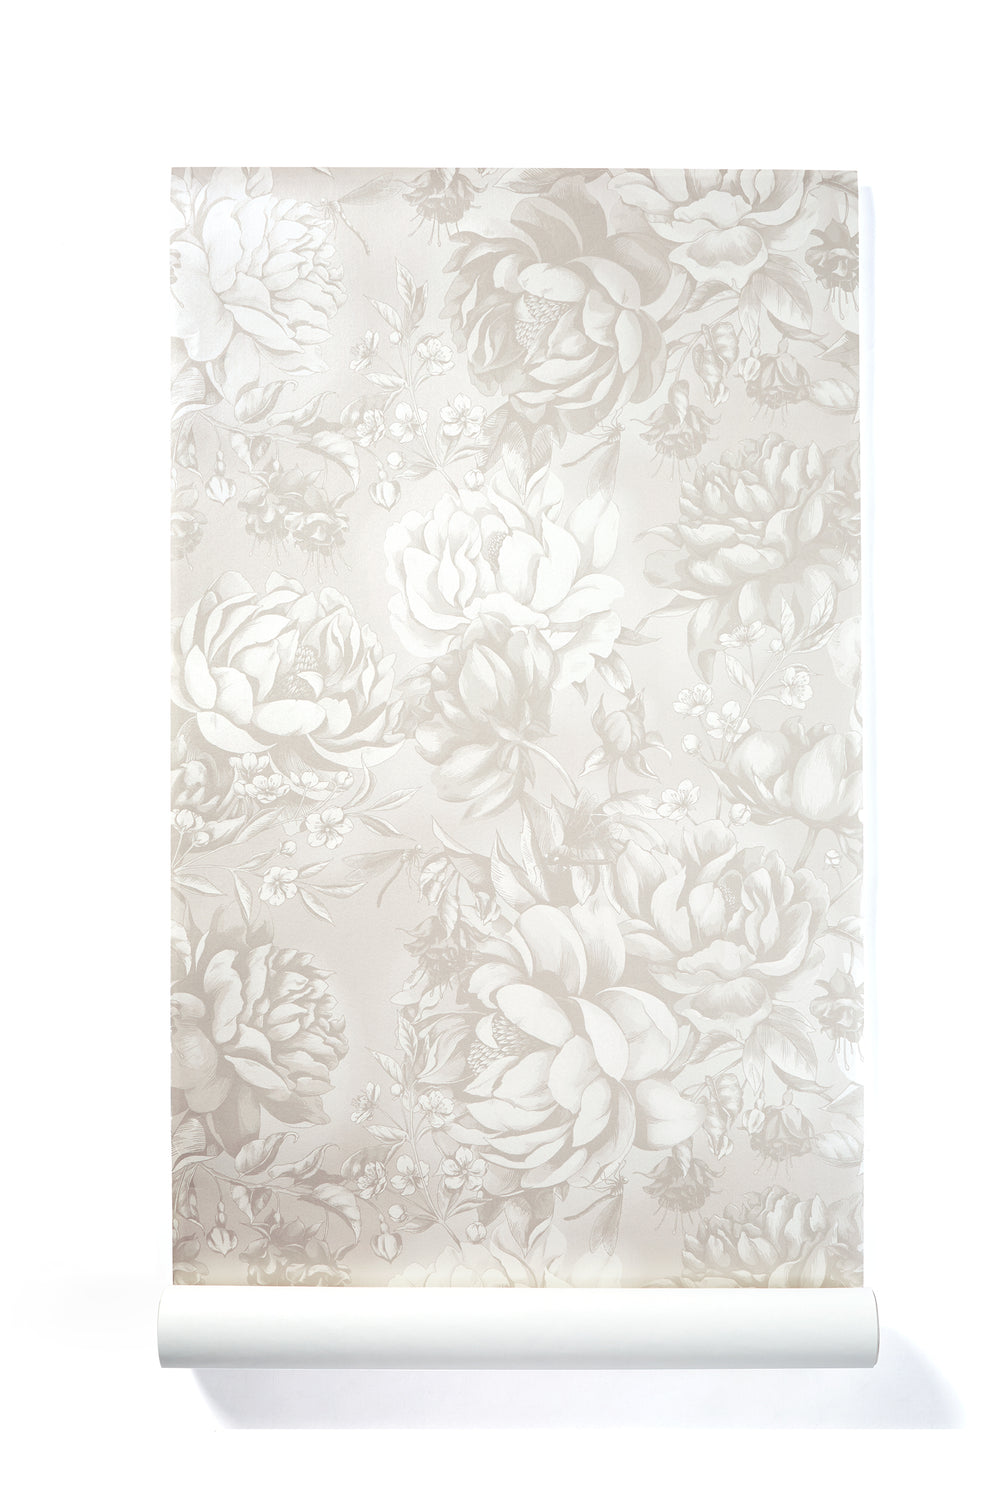 Beauty Becoming - Oversized Peony Floral Wallpaper